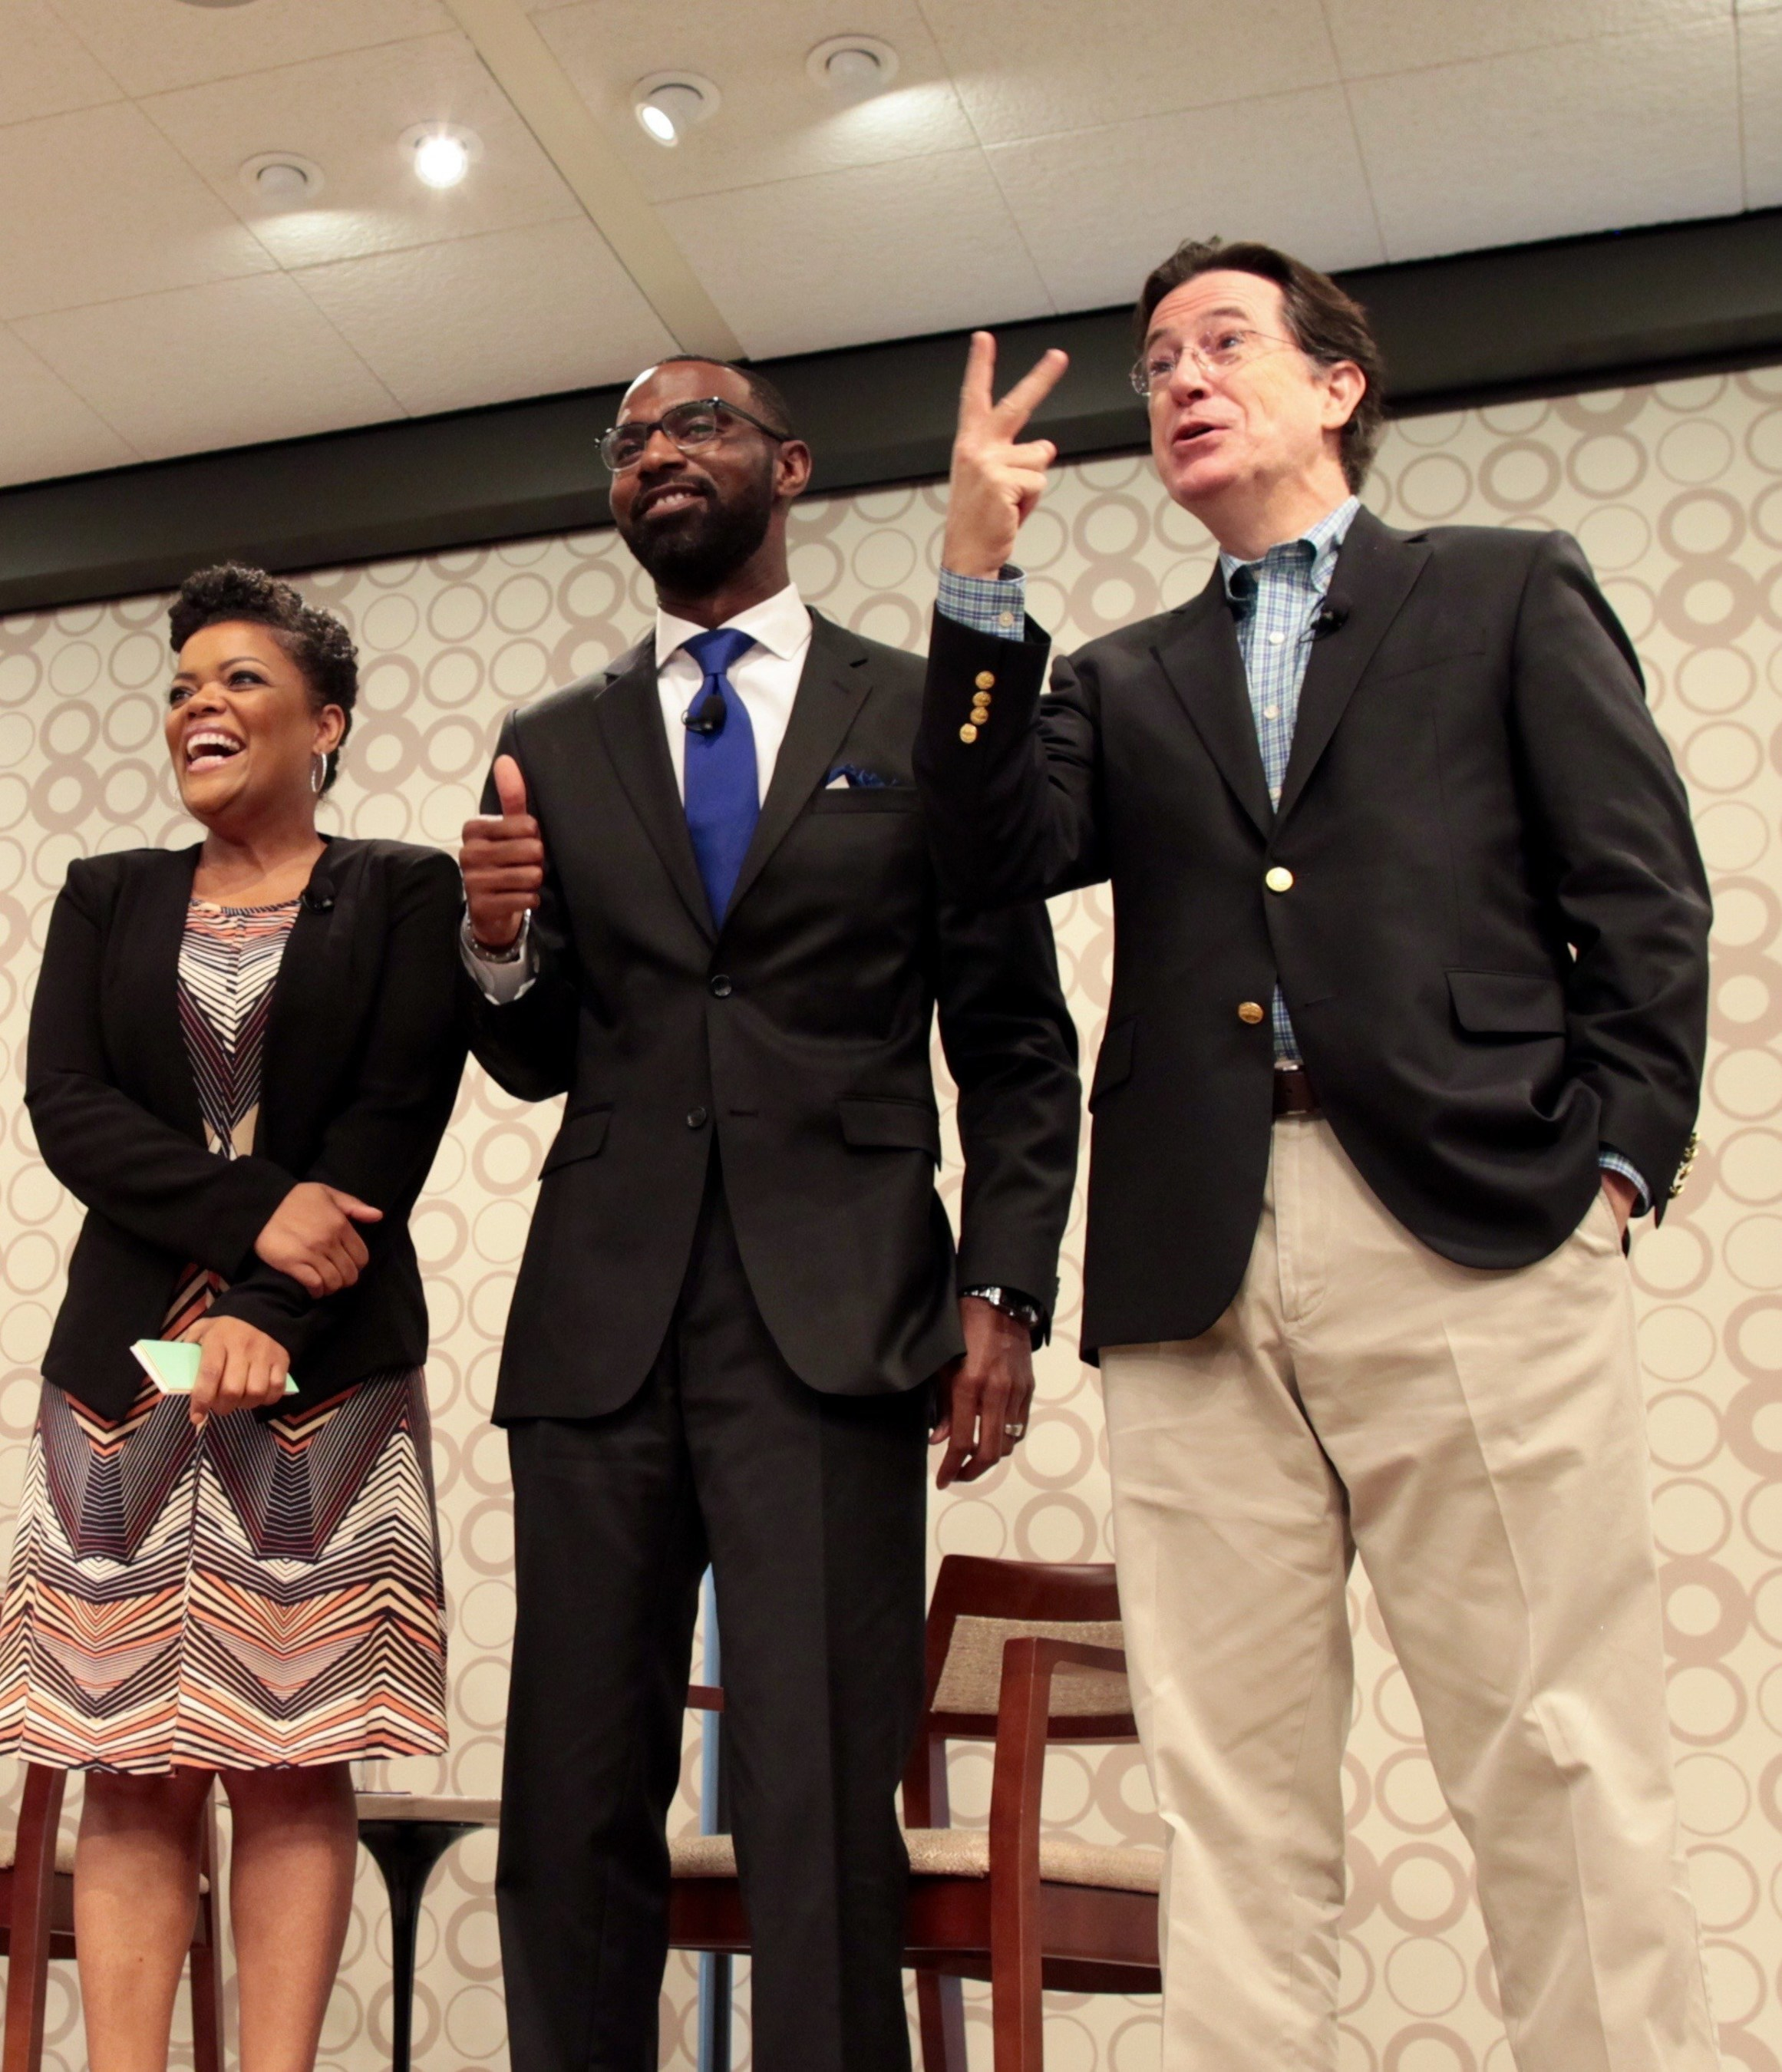 Stephen Colbert joins Yvette Nicole Brown and Damon Qualls, teacher at Alexander Elementary School in Greenville, SC, to announce the funding of nearly 1,000 classroom project from South Carolina on DonorsChoose.org.